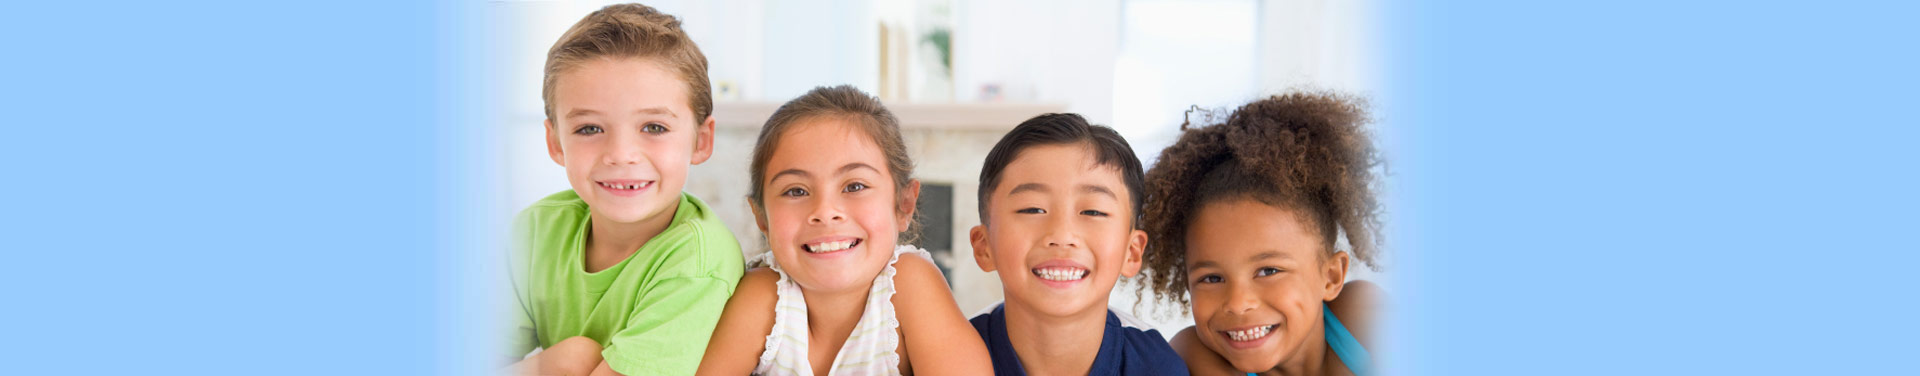 pediatric dentist, long beach dentist